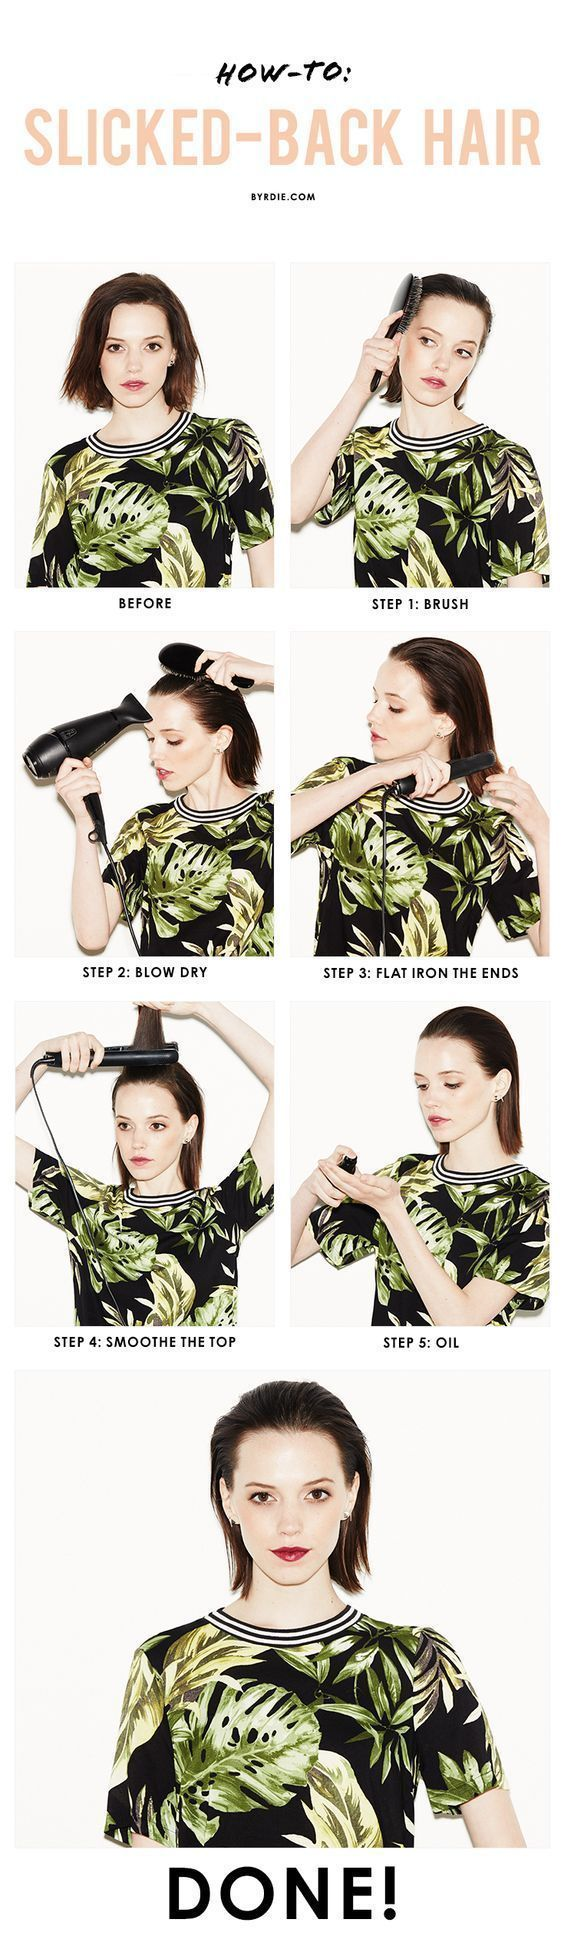 Hairstyles for Hot Days Hairstyles for Hot Days+#days #Hairstyles #Hot